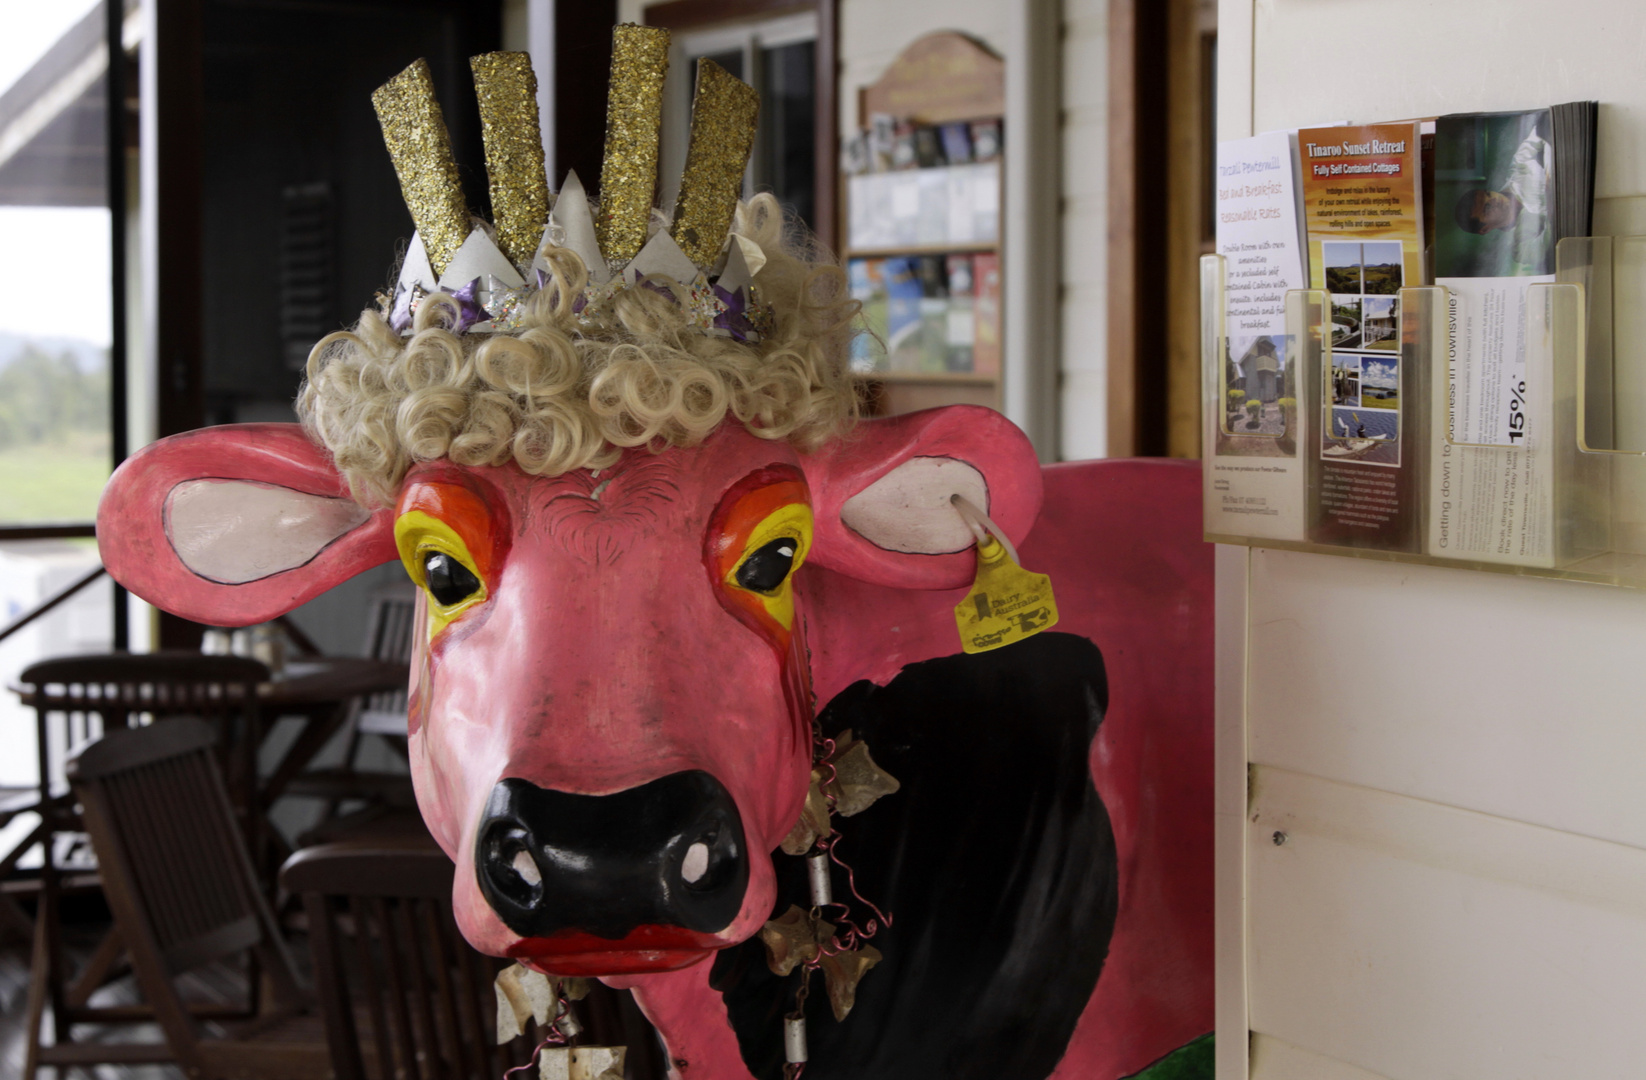 her majesty - the cow